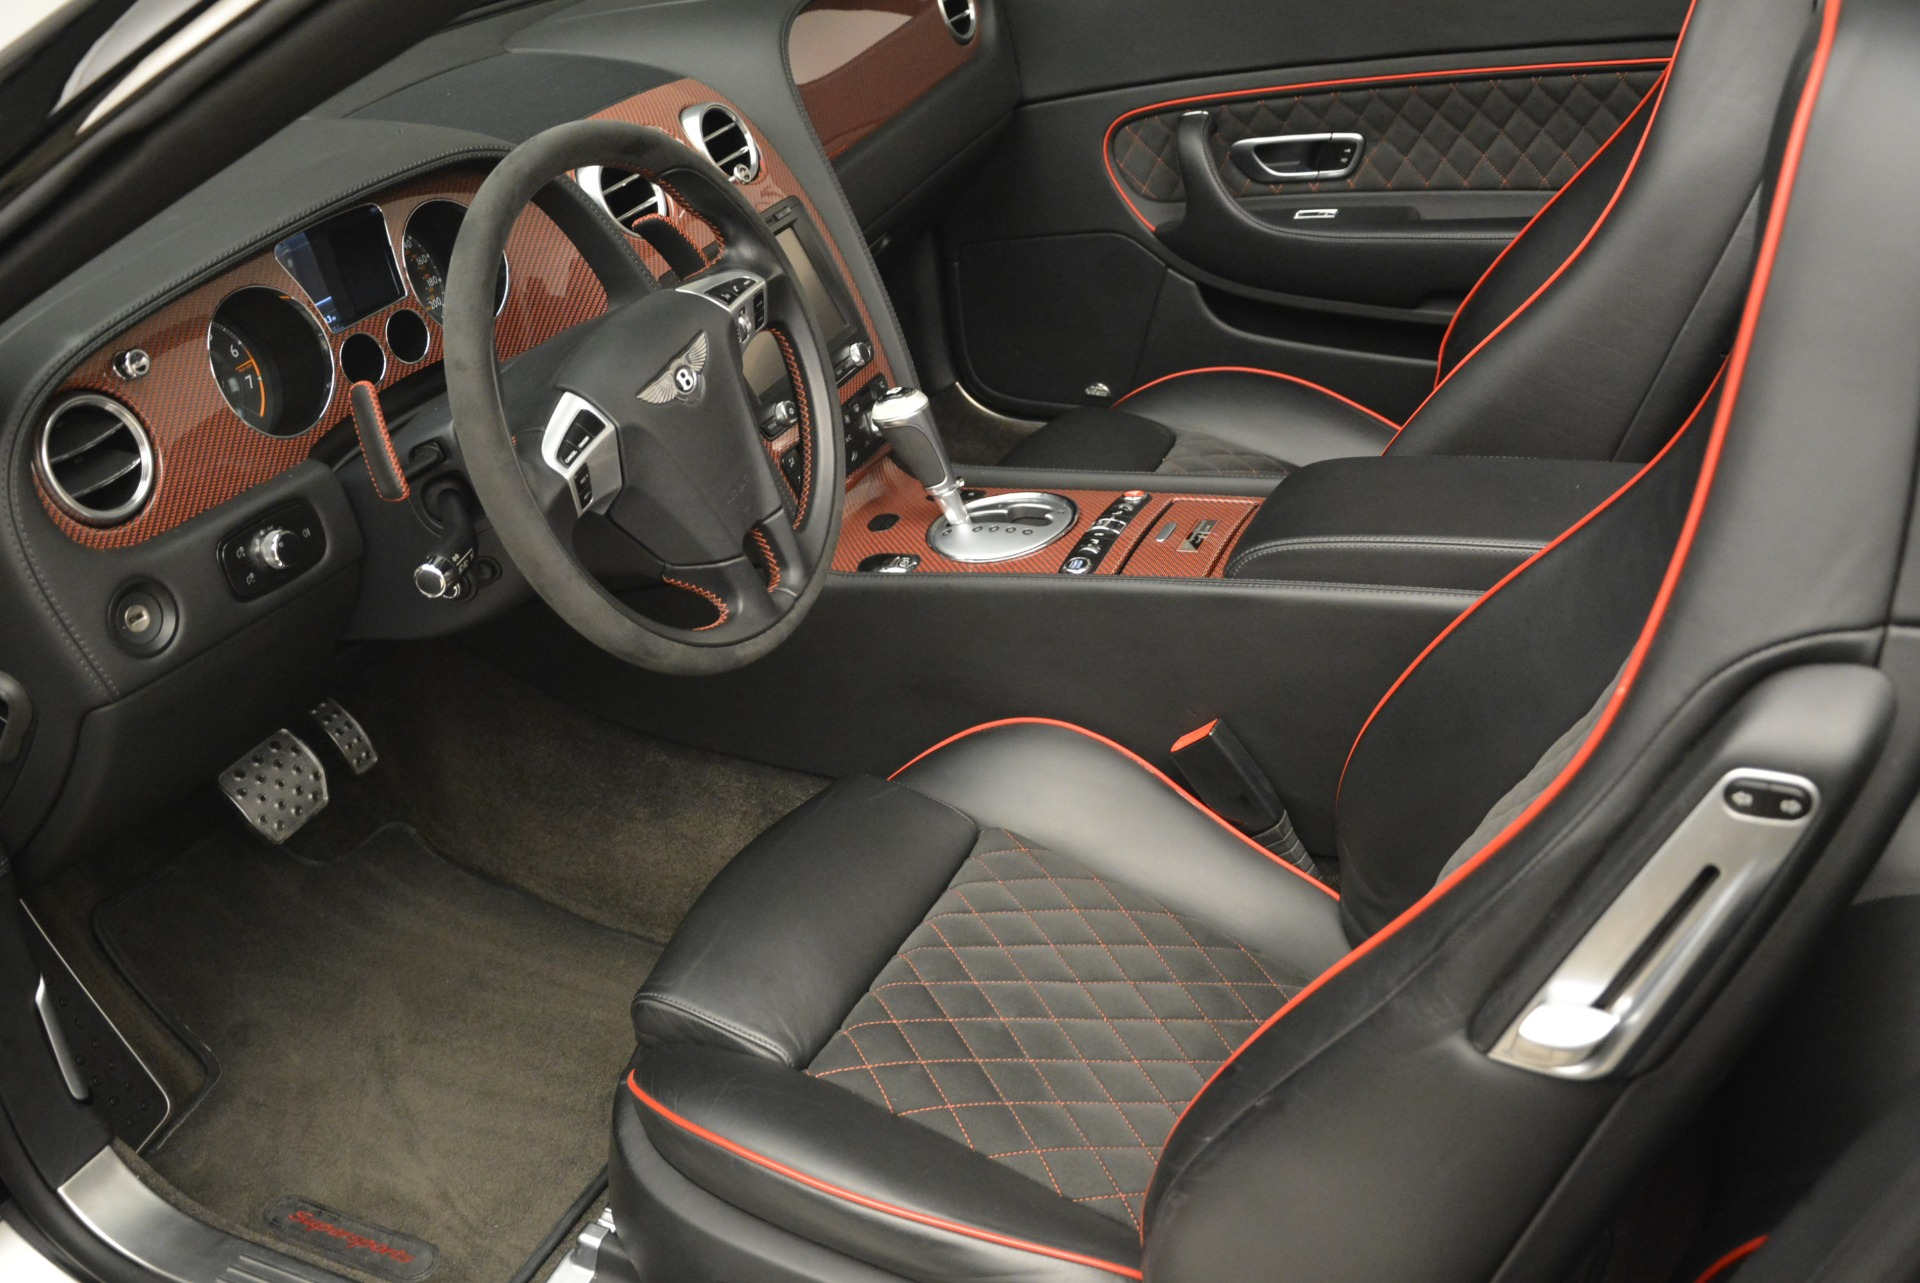 Used 2013 Bentley Continental GT Supersports Convertible ISR For Sale In Westport, CT 2151_p31